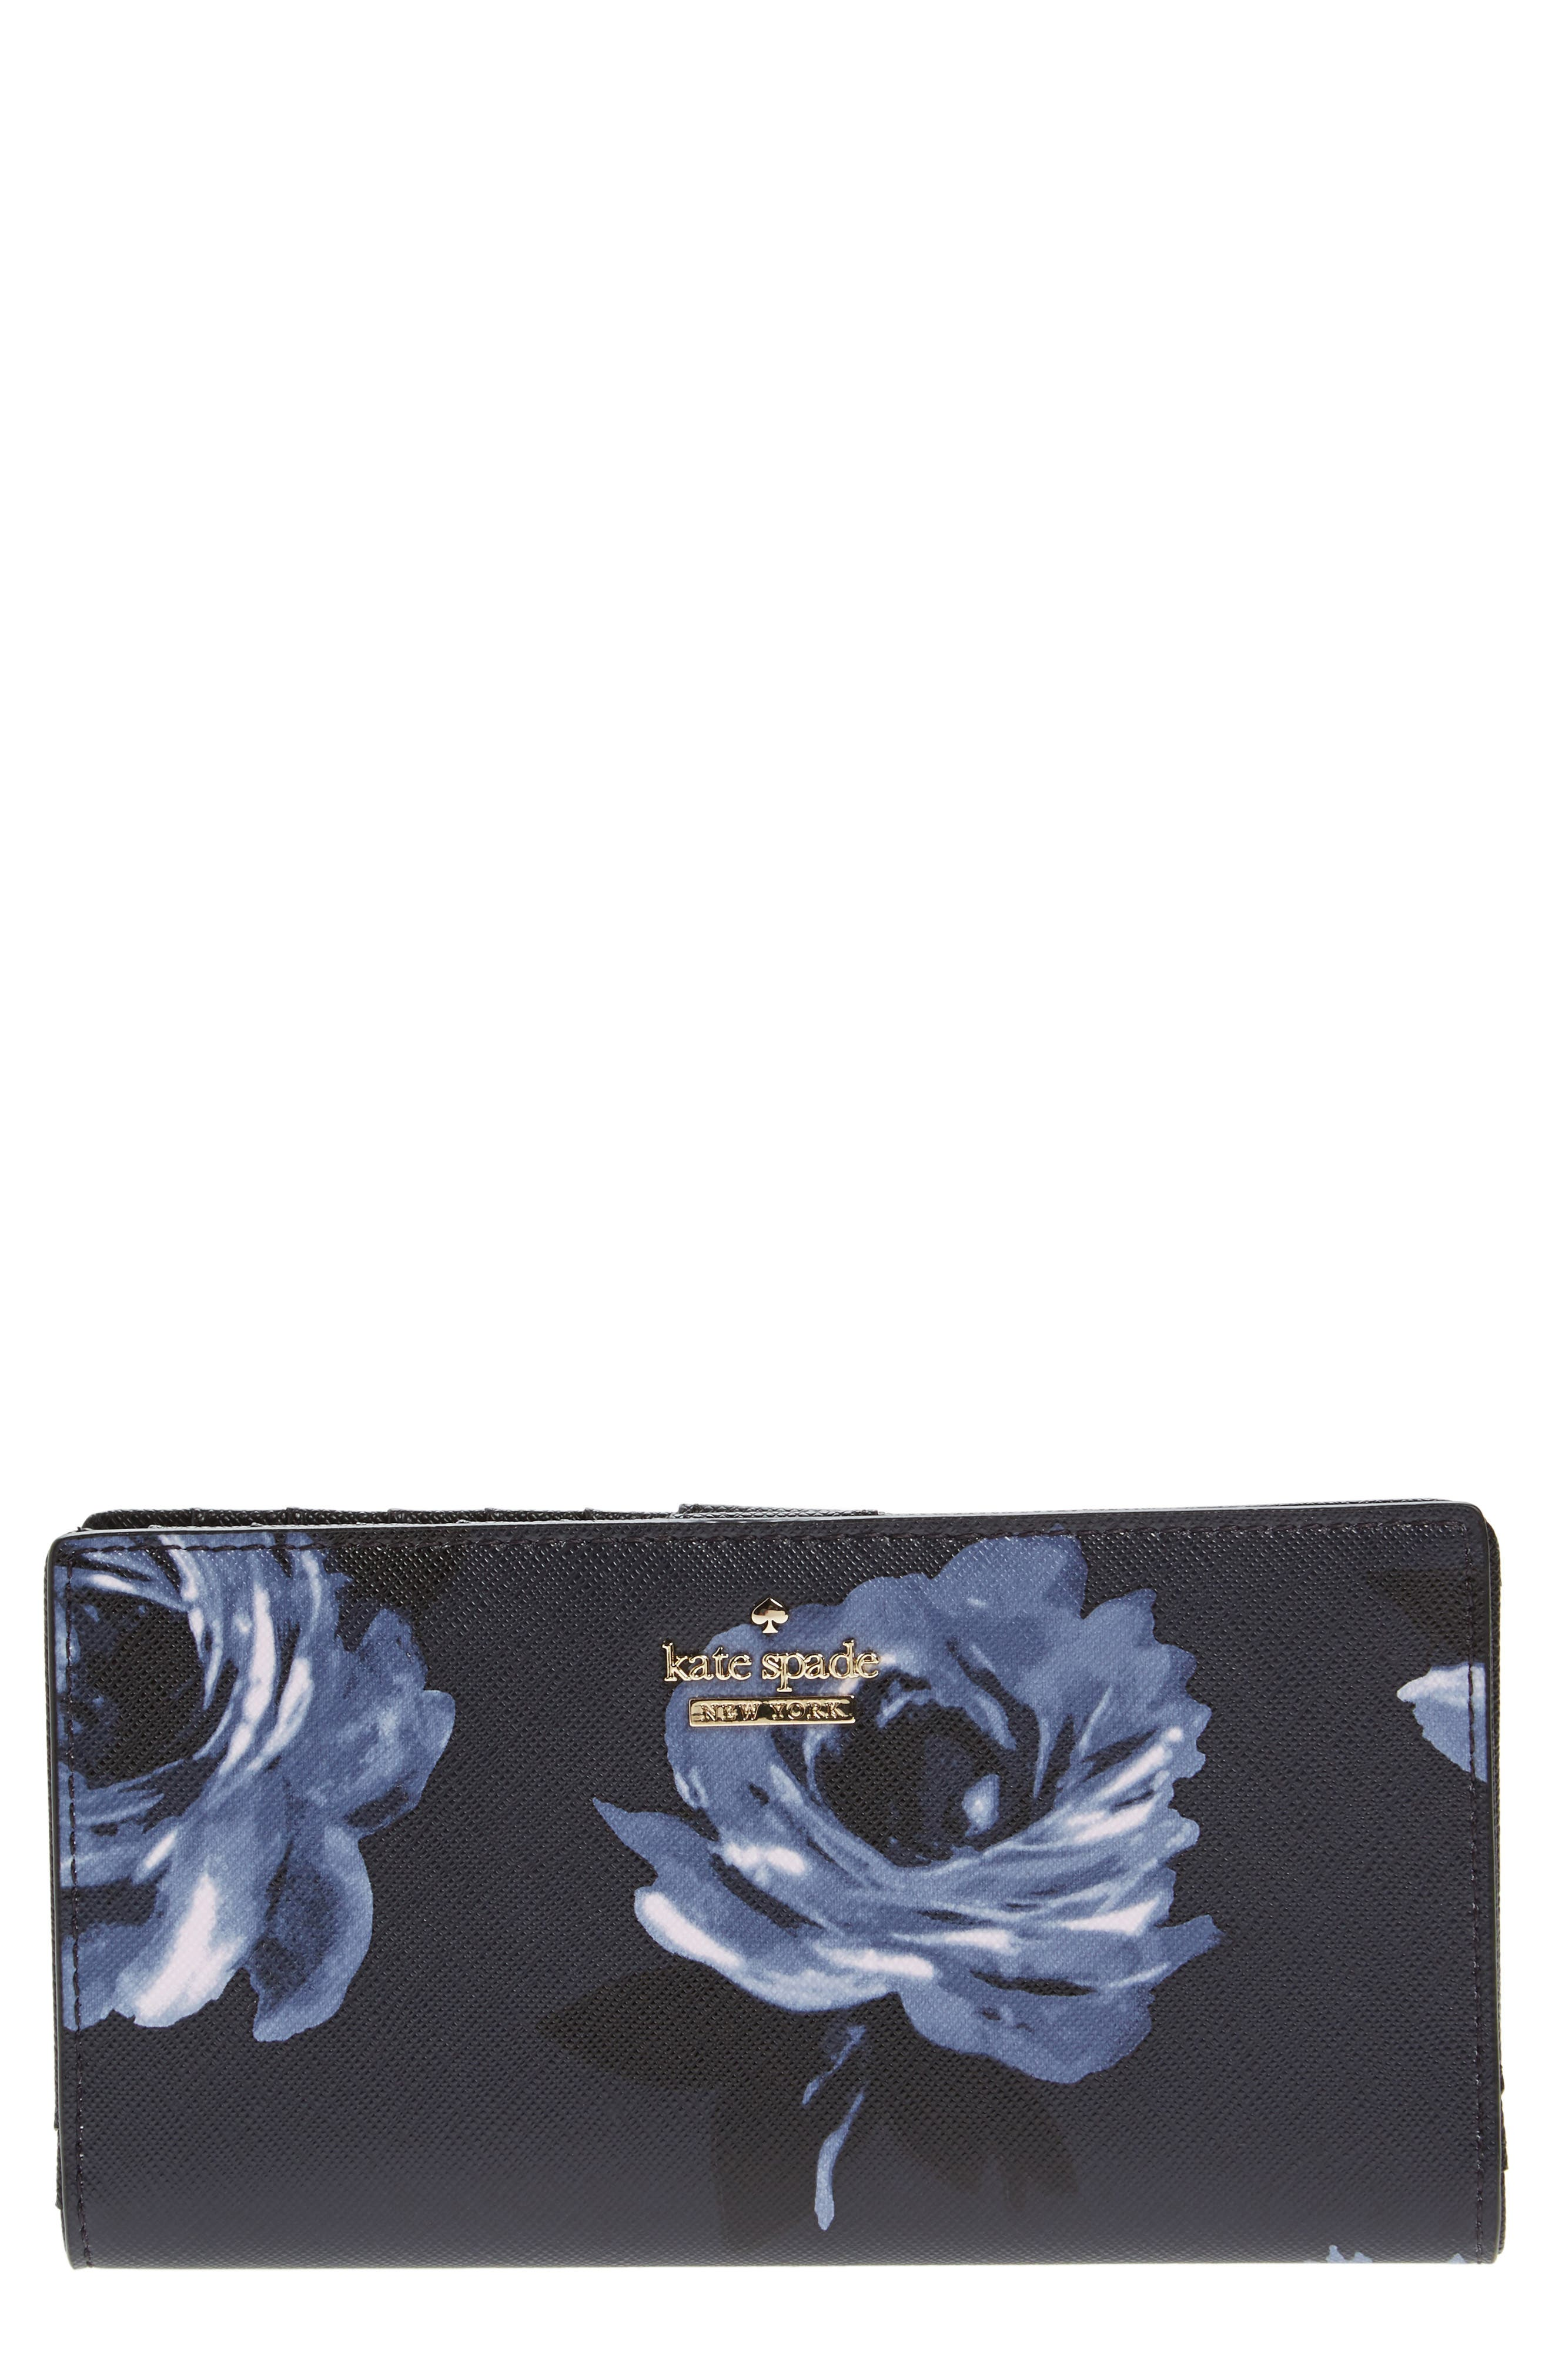 cameron street - stacy leather wallet,                         Main,                         color, 458